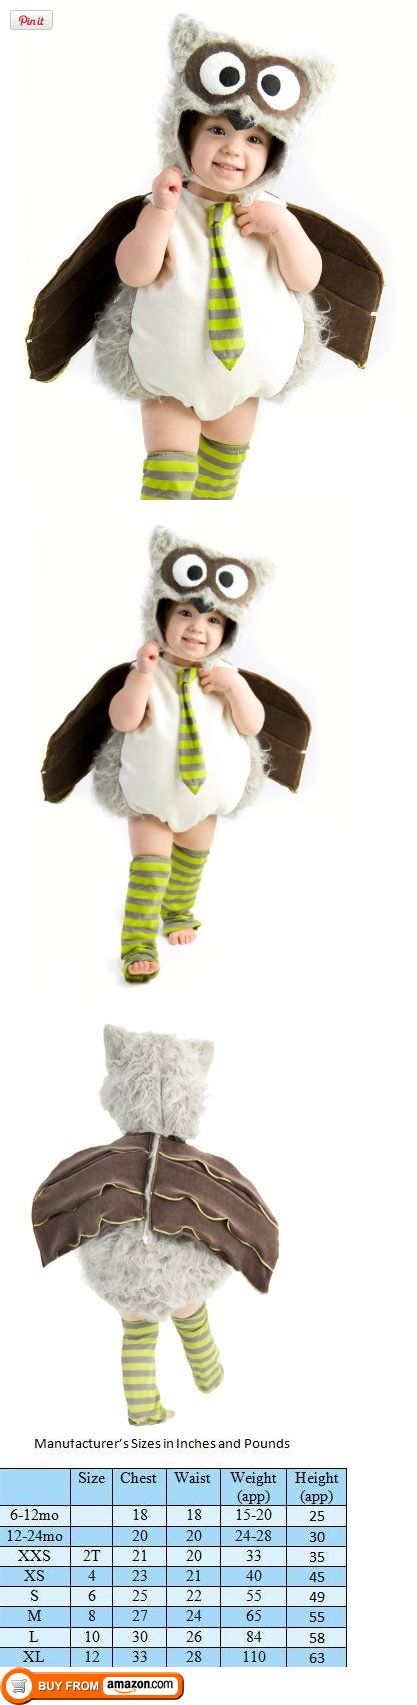 princess paradise baby boys owl outfit cute toddler halloween costume 18 months 2t edward - Where To Buy Toddler Halloween Costumes